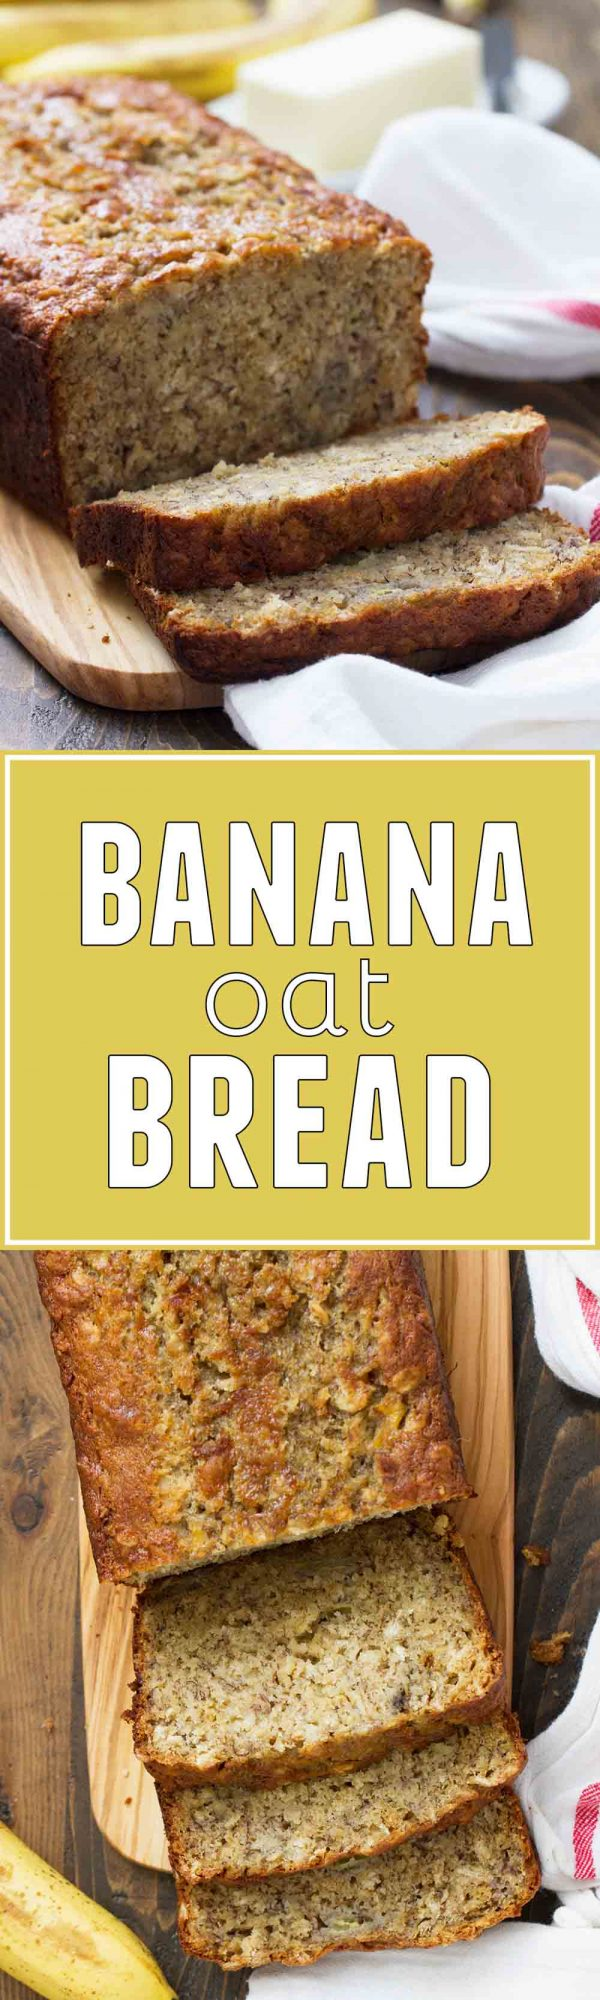 Heartier than normal banana bread, this Banana Oat Bread makes the perfect breakfast bread! Just sweet enough with great texture, this bread is the best way to start the day.